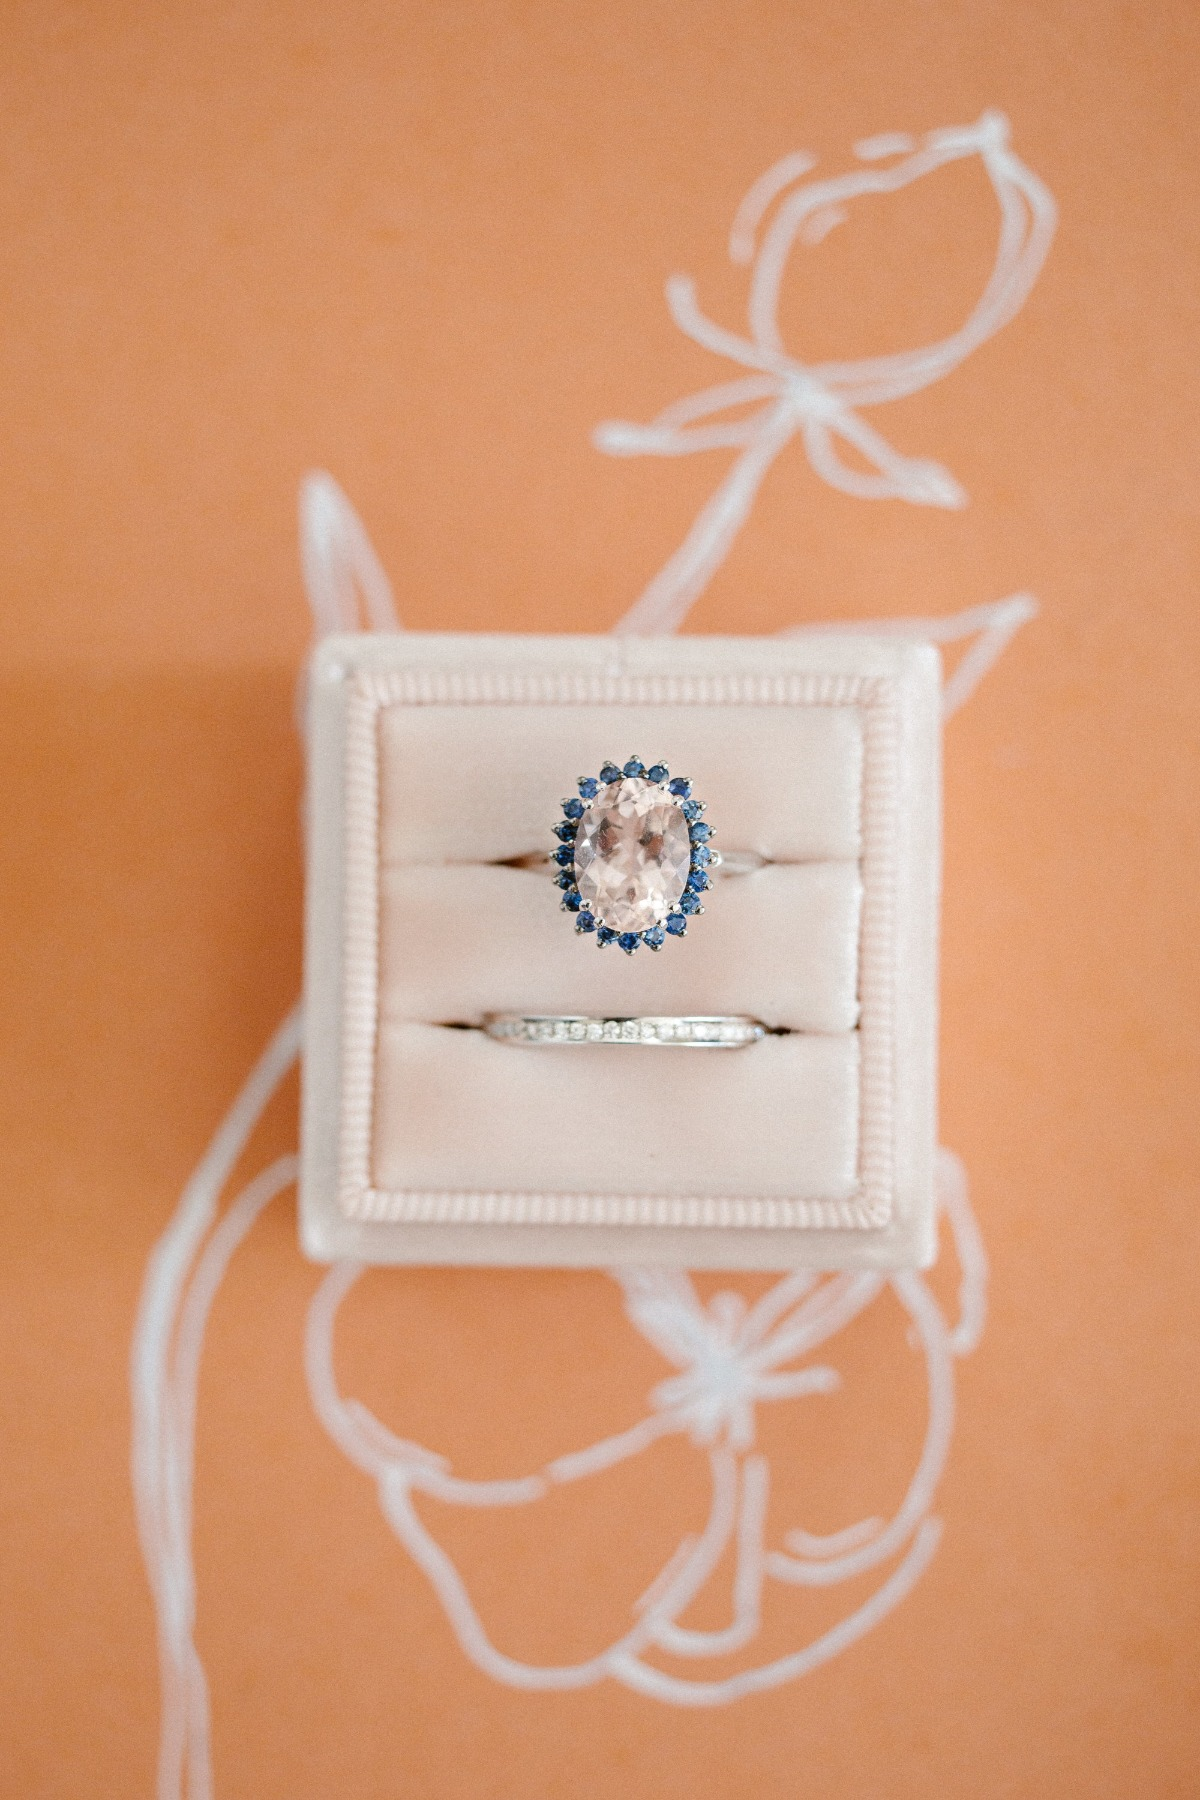 flat lay styling idea for wedding ring